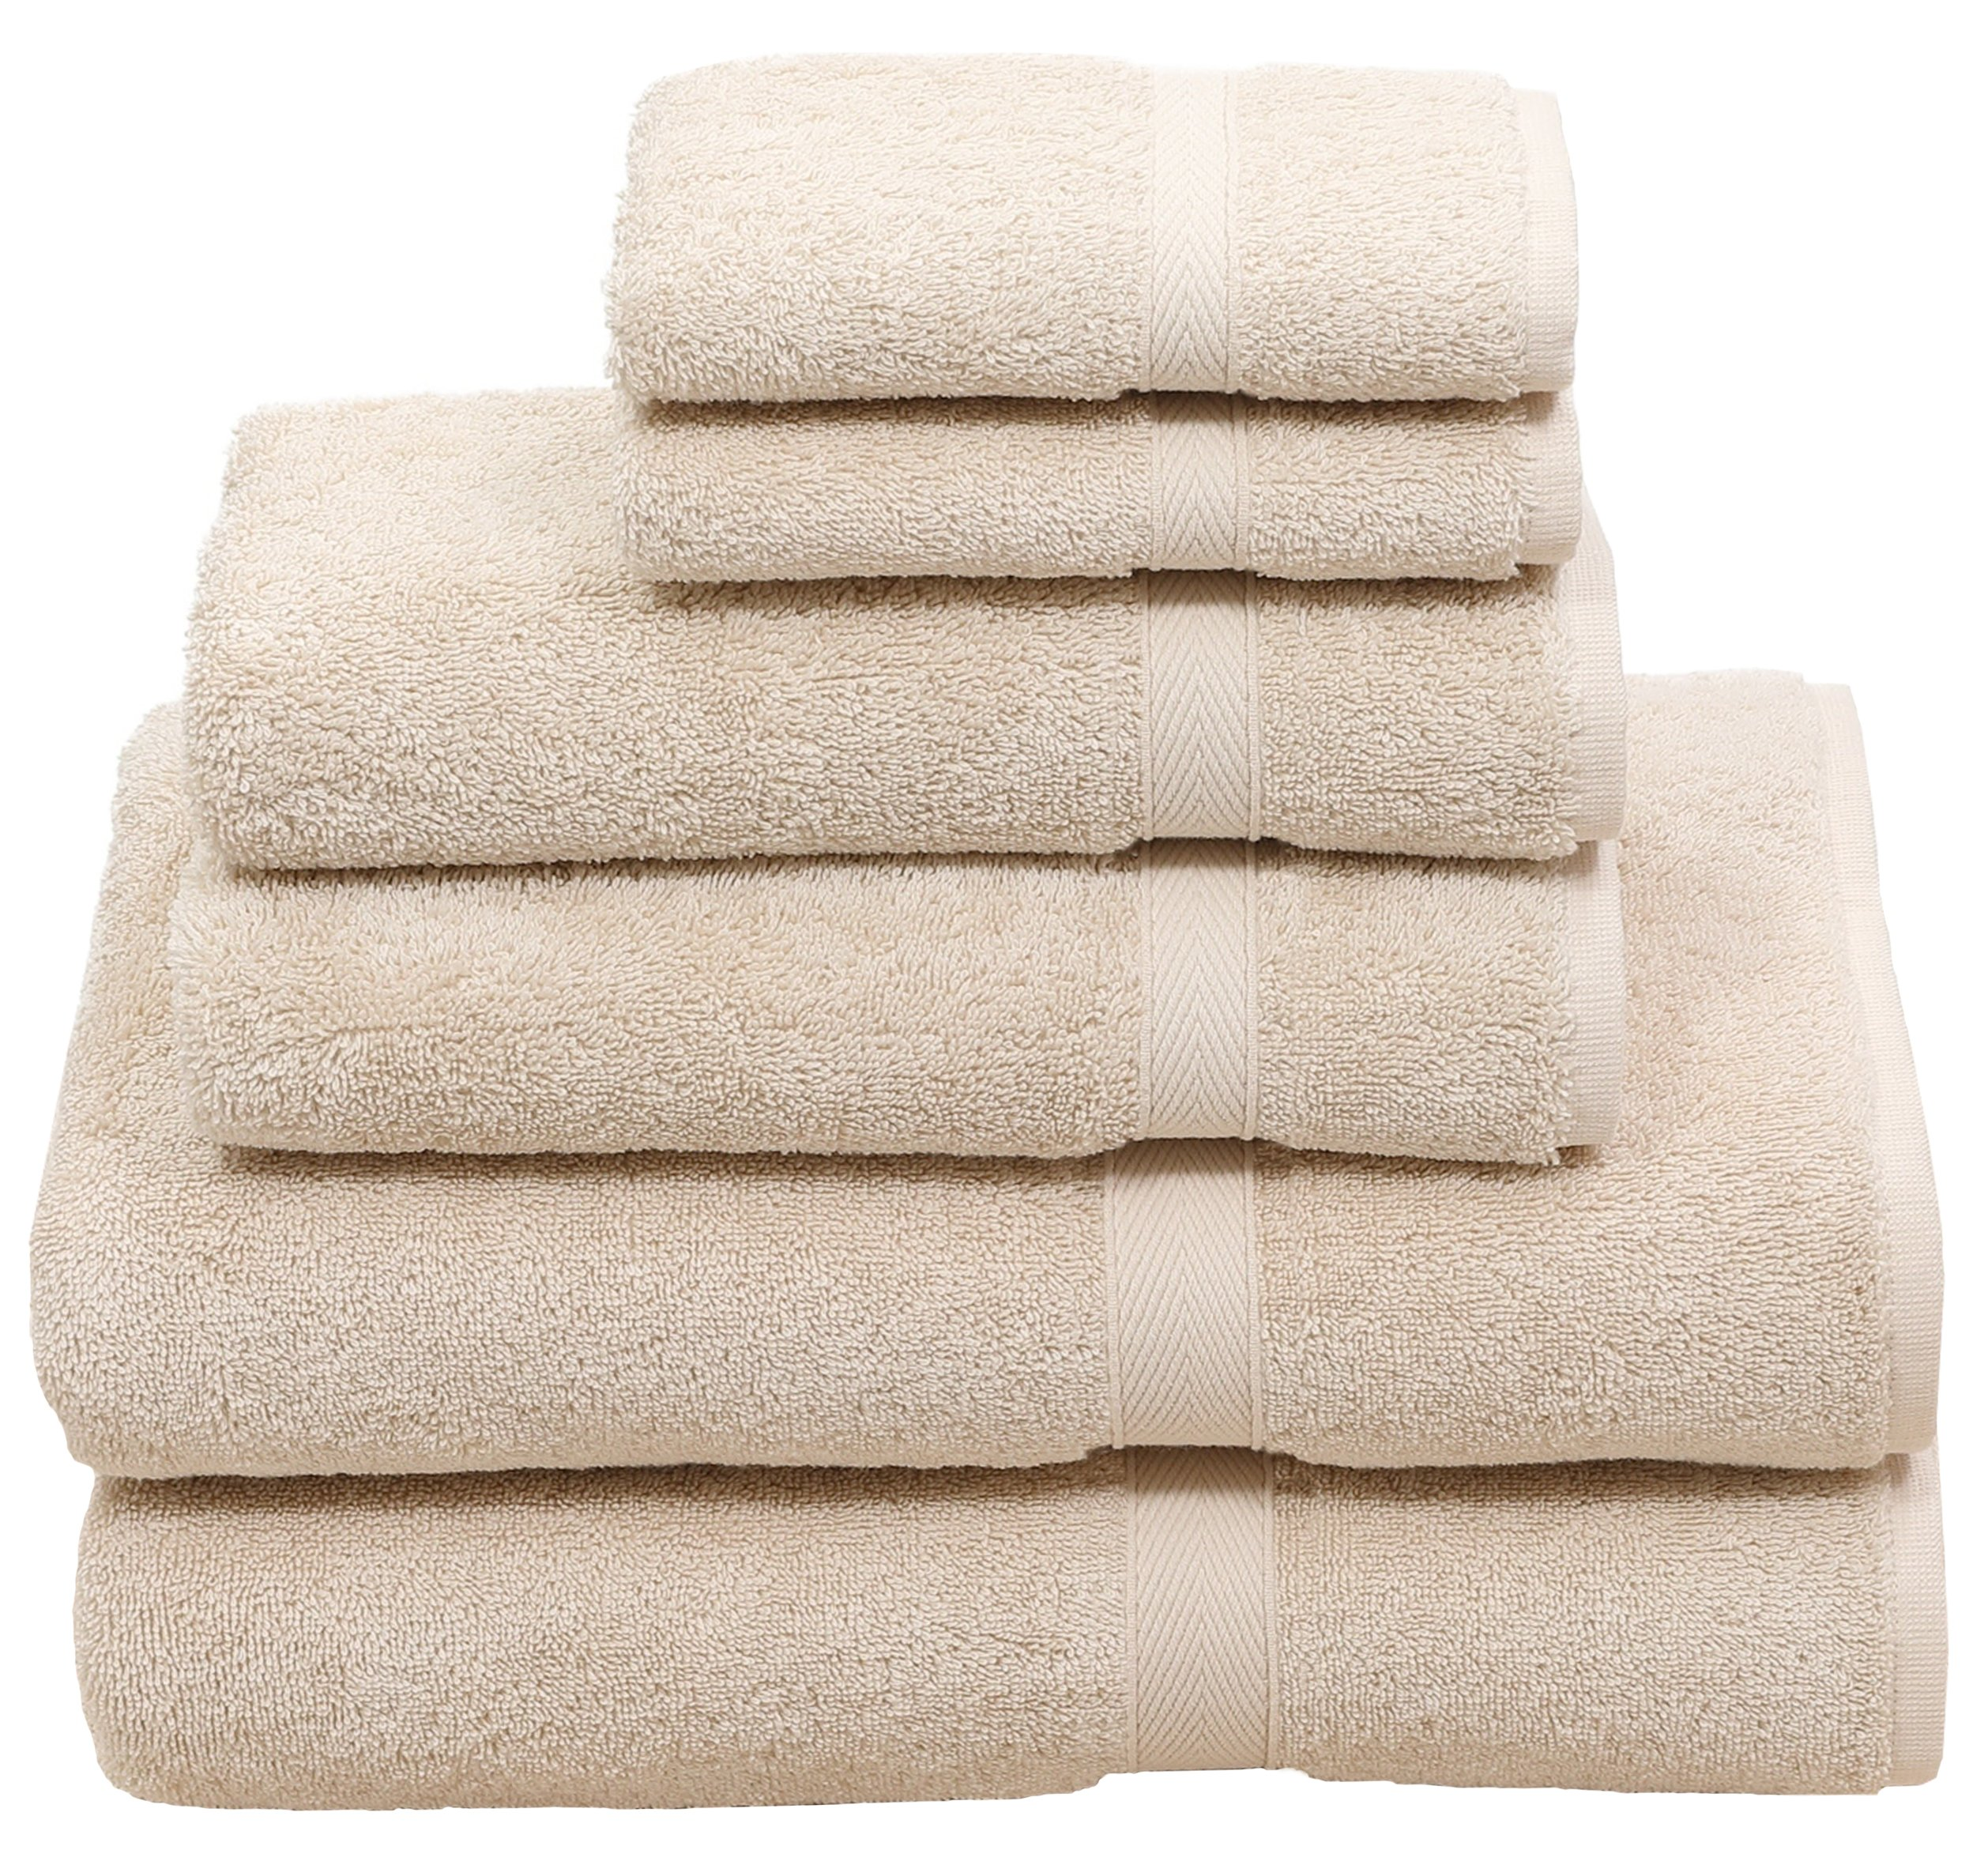 Premium 6 Piece Towel Set - 2 Bath Towels, 2 Hand Towels and 2 Washcloths - Beige - Cotton - Machine Washable, Hotel Quality, Super Soft and Highly Absorbent - by HomeLabels